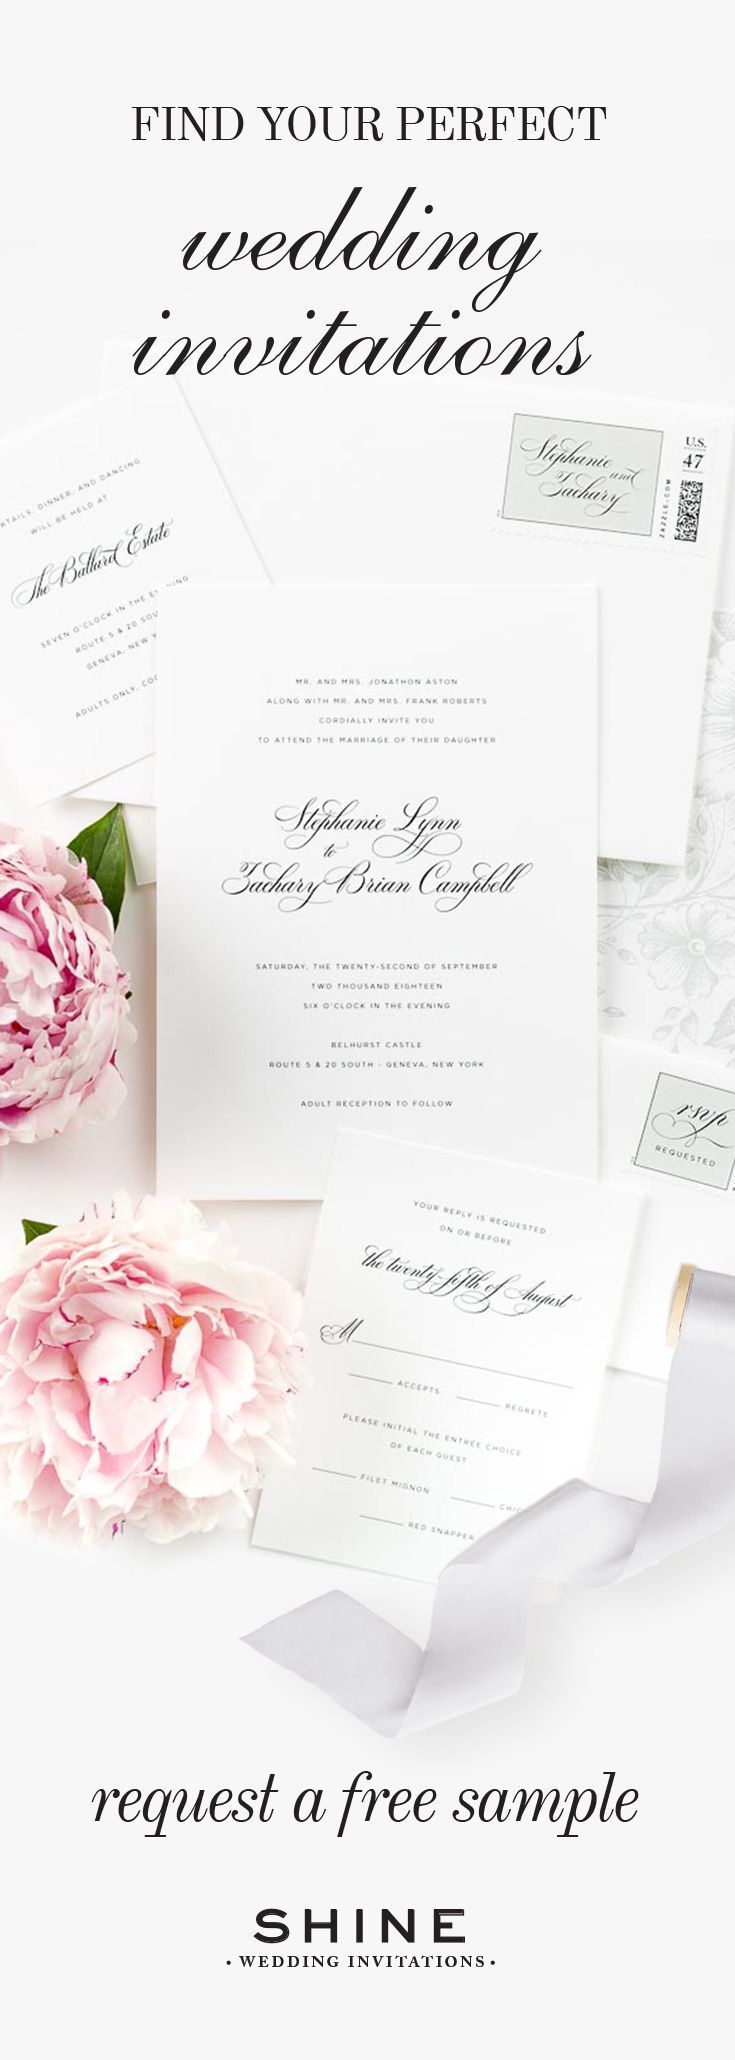 Find your perfect wedding invitations!